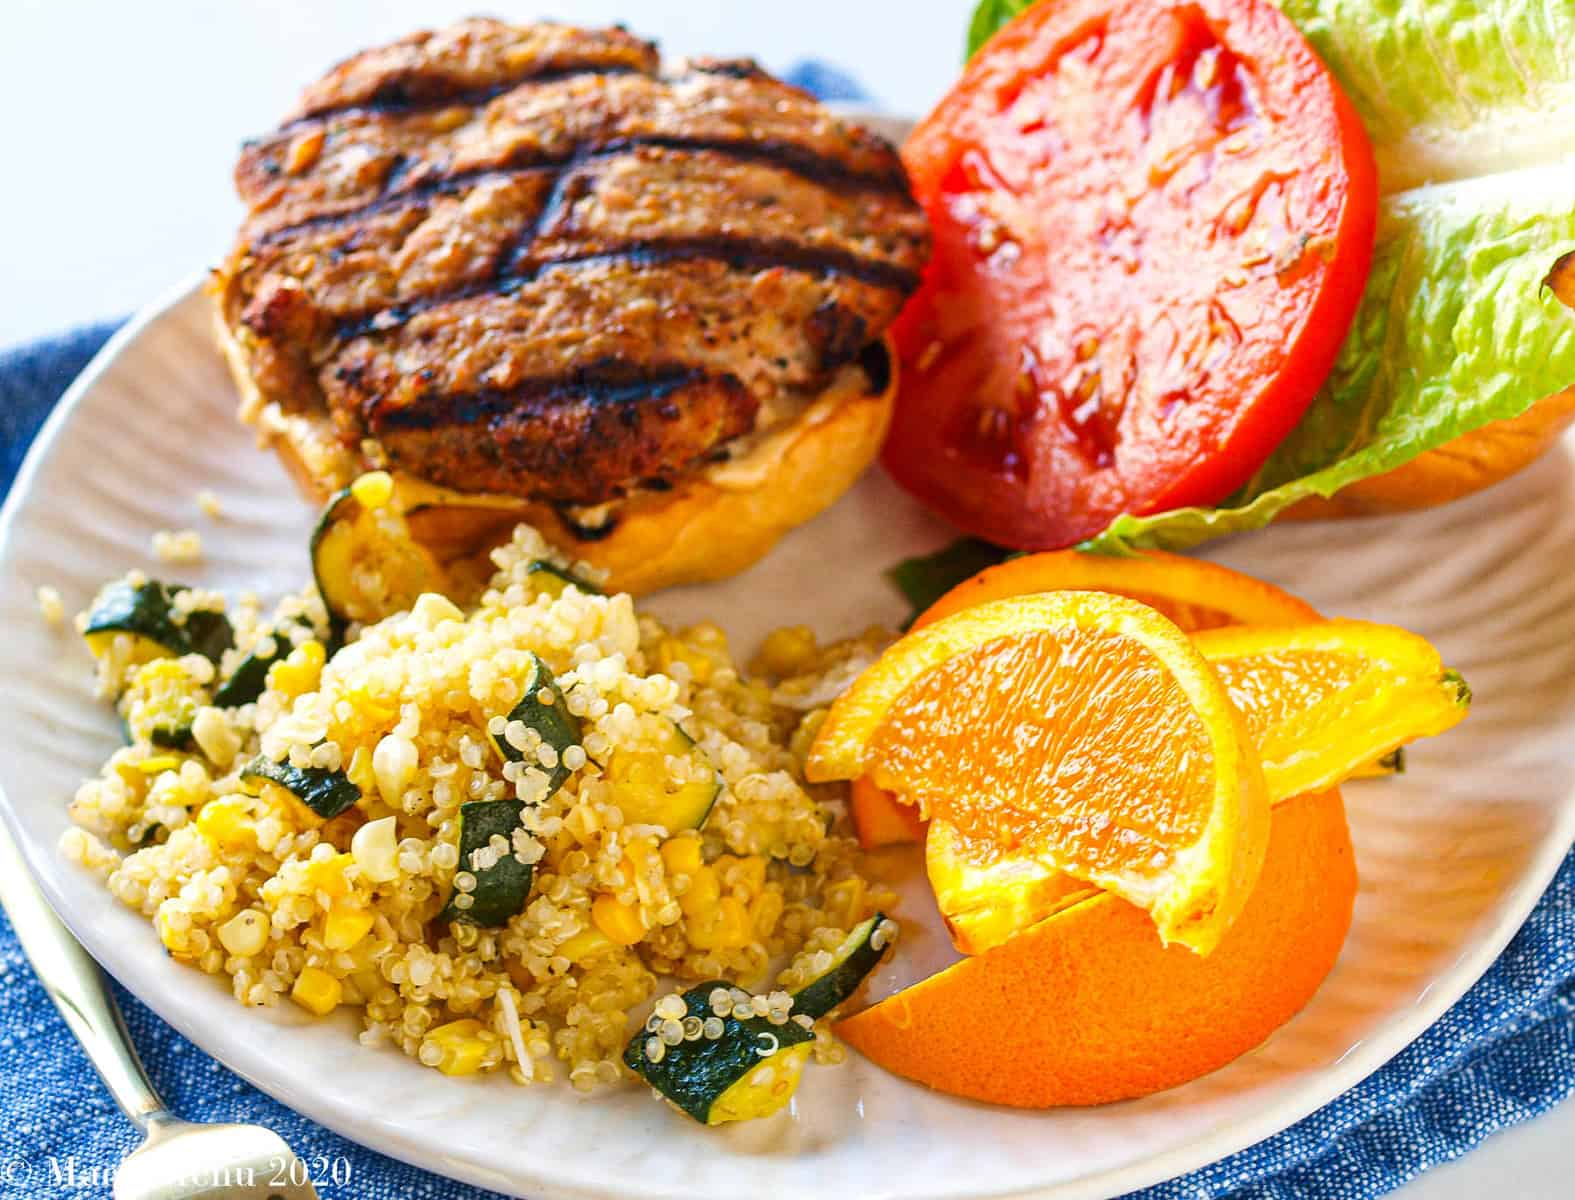 An open-faced Jamaican Jerk Turkey Burger on a white plate with quinoa salad and sliced oranges